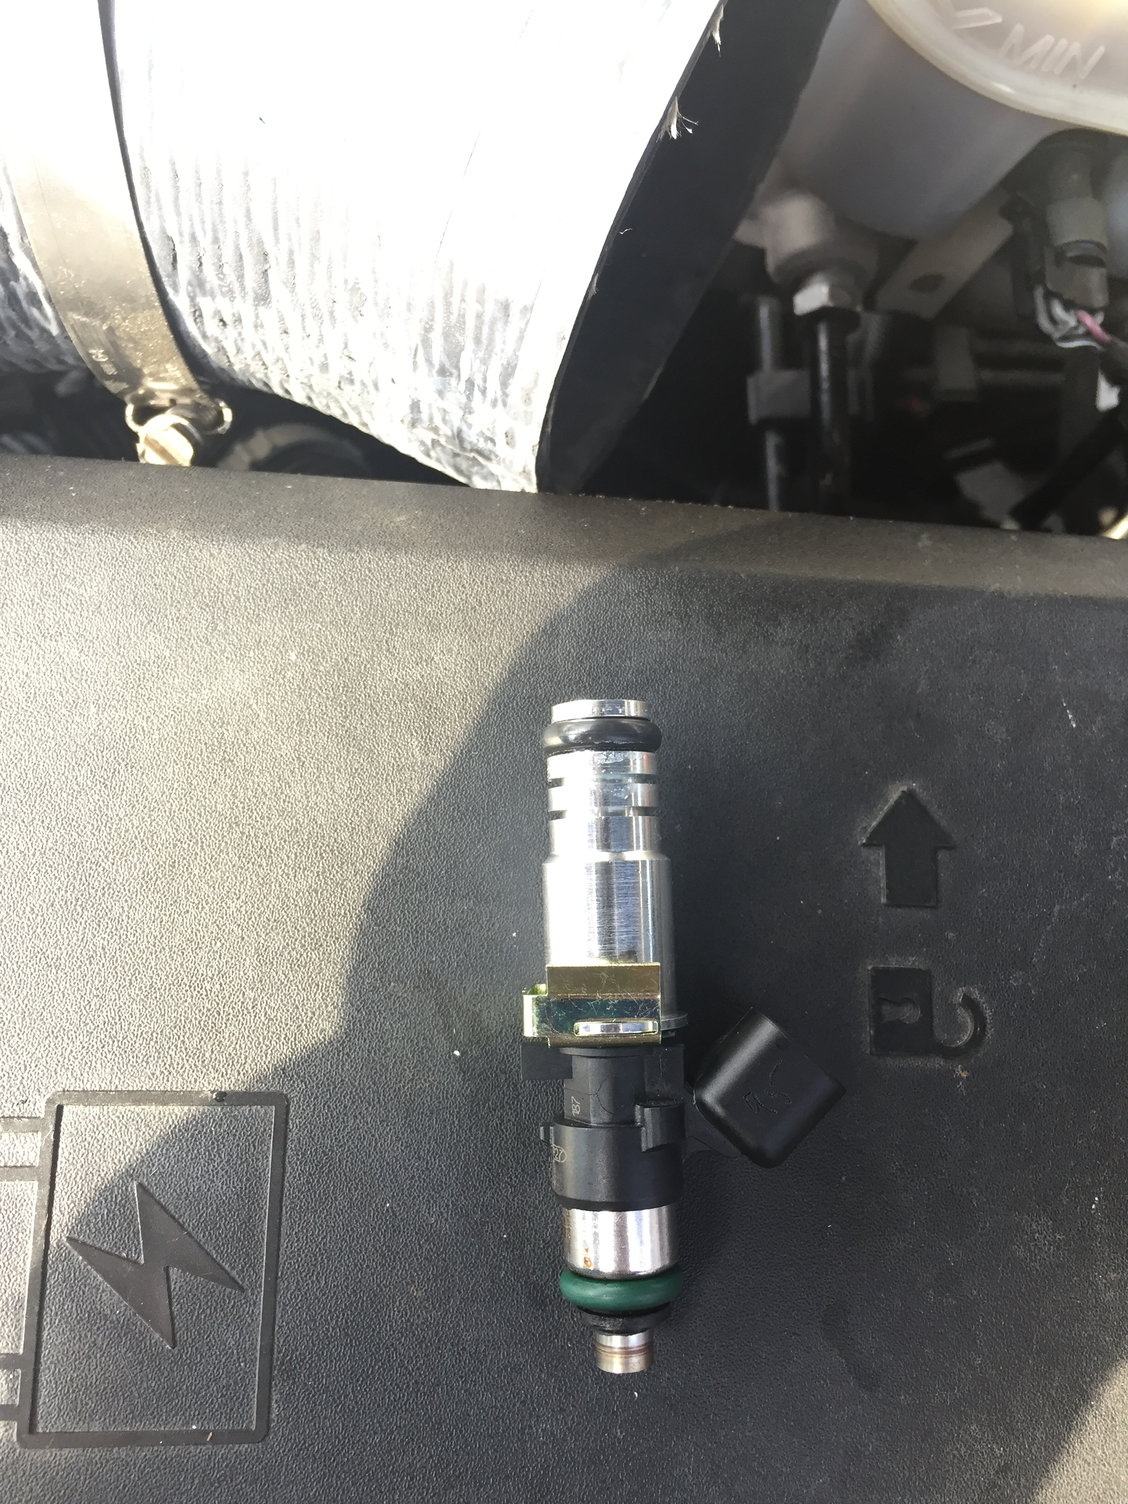 Holley hi ram ls3 injectors issues - PerformanceTrucks net